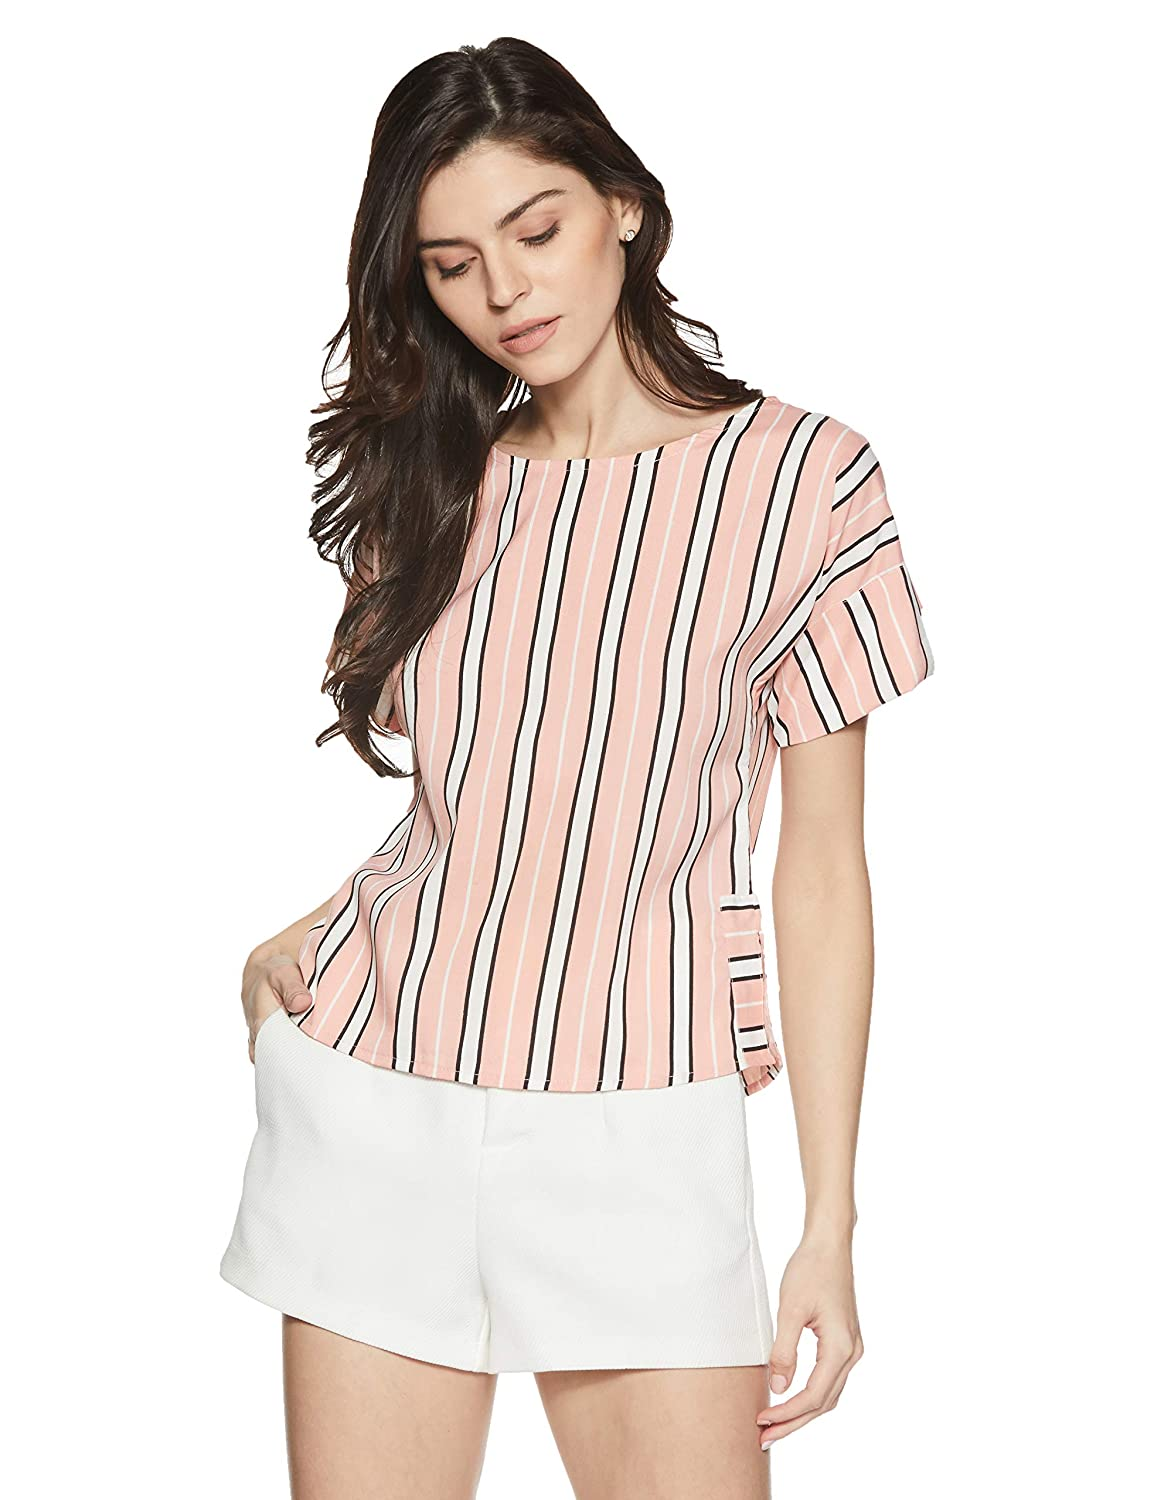 Stalk Buy Love Women's Crepe Striped Lucille Top